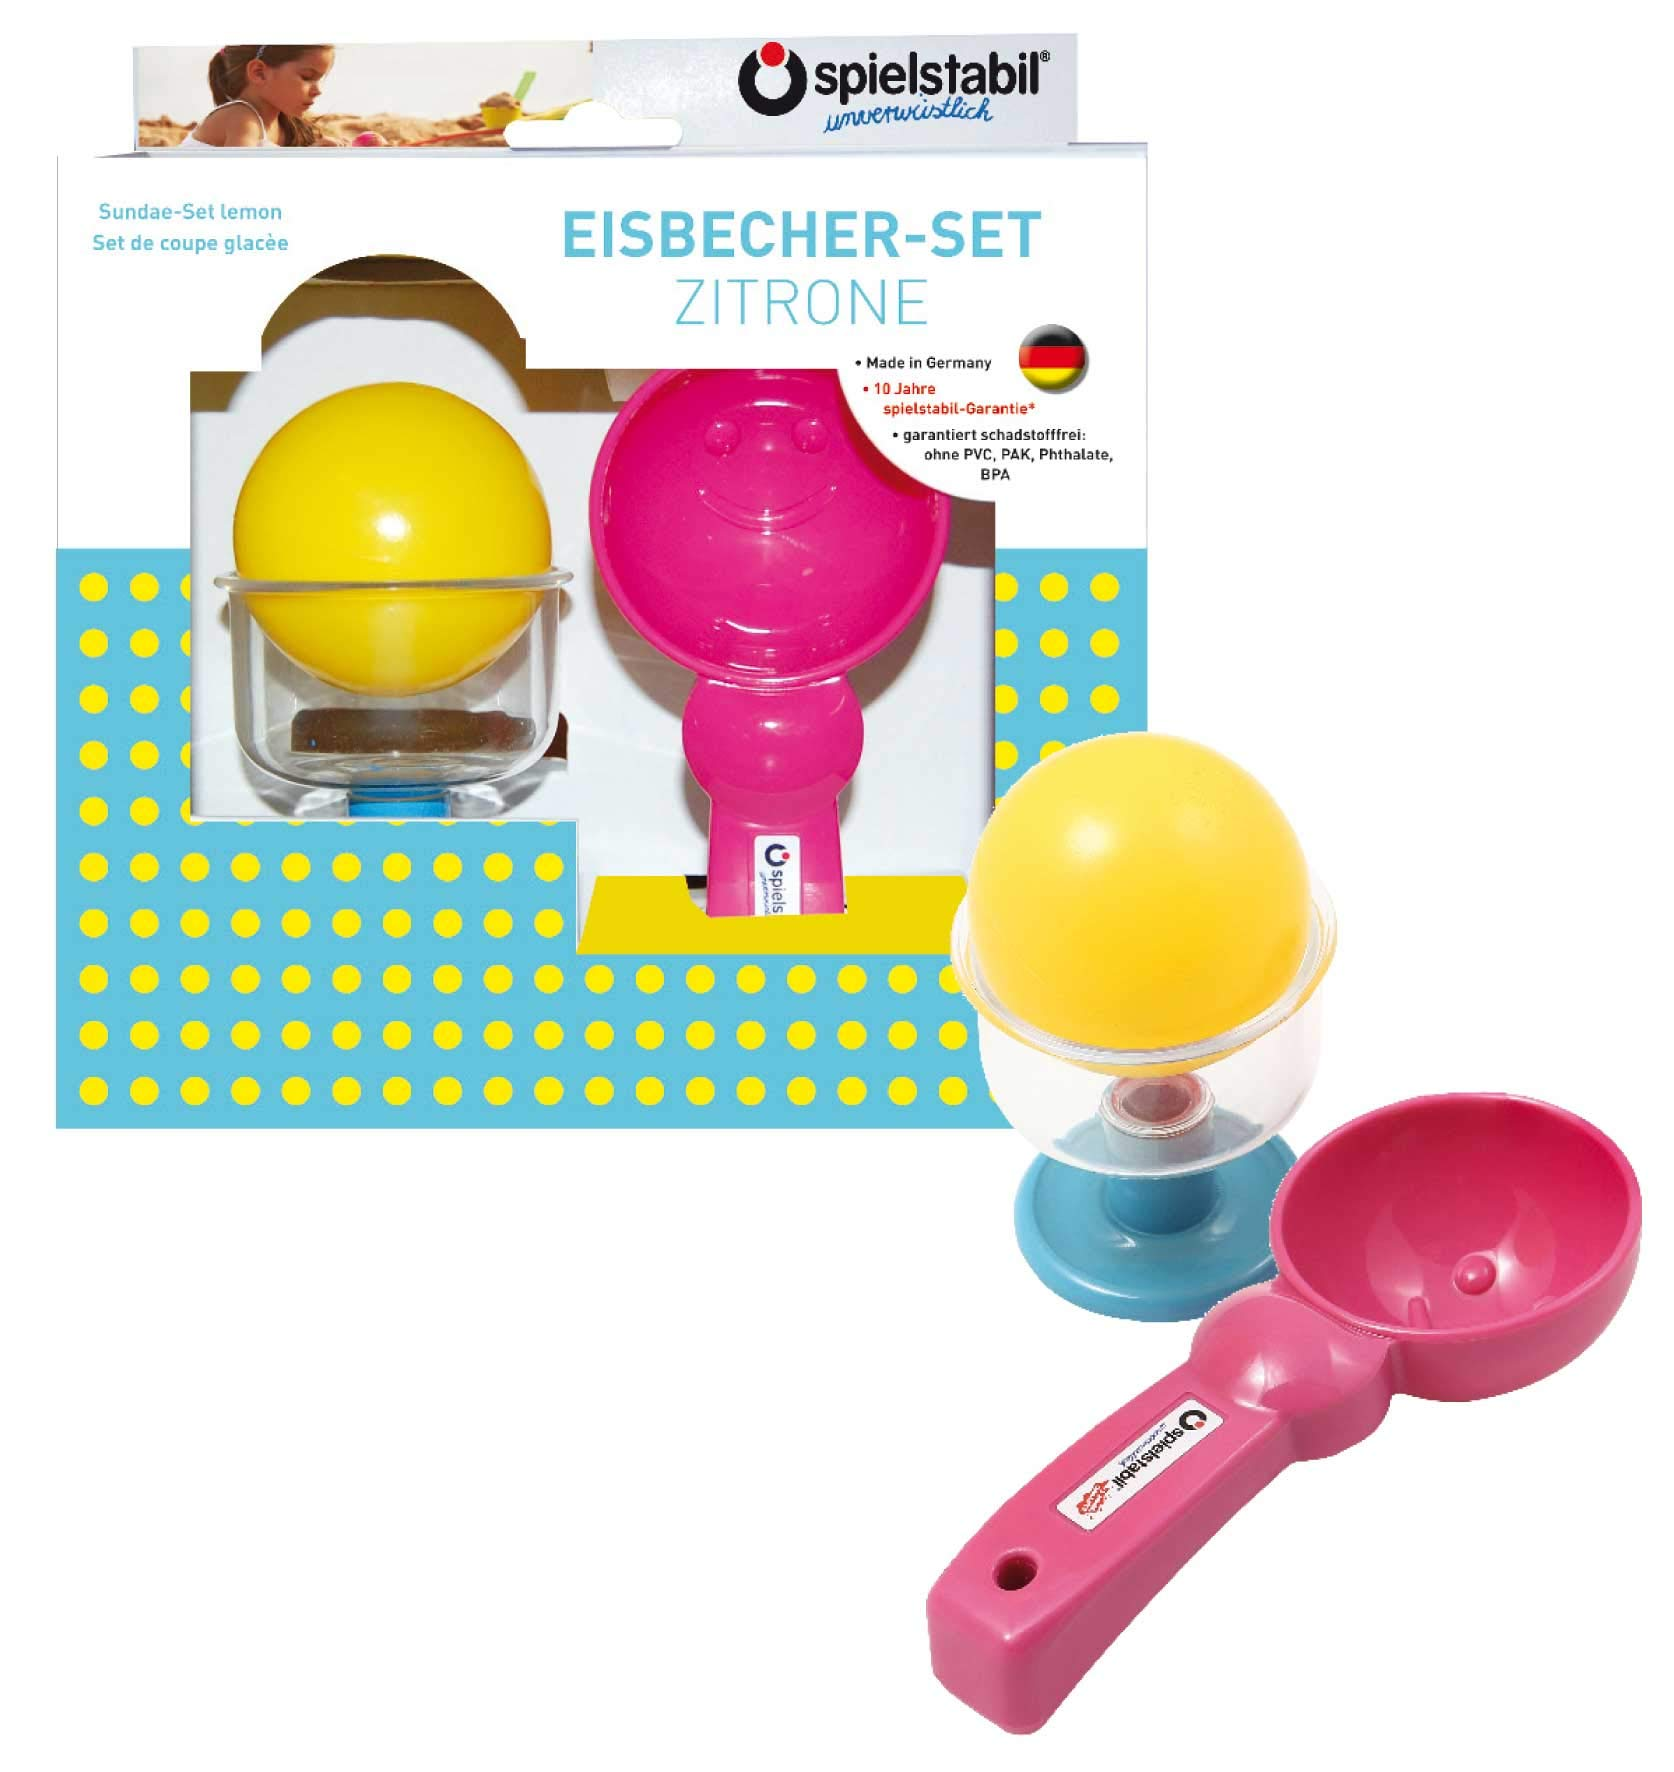 Spielstabil Lemon Sundae Set for Use in The Sand or with Real Food (Made in Germany)